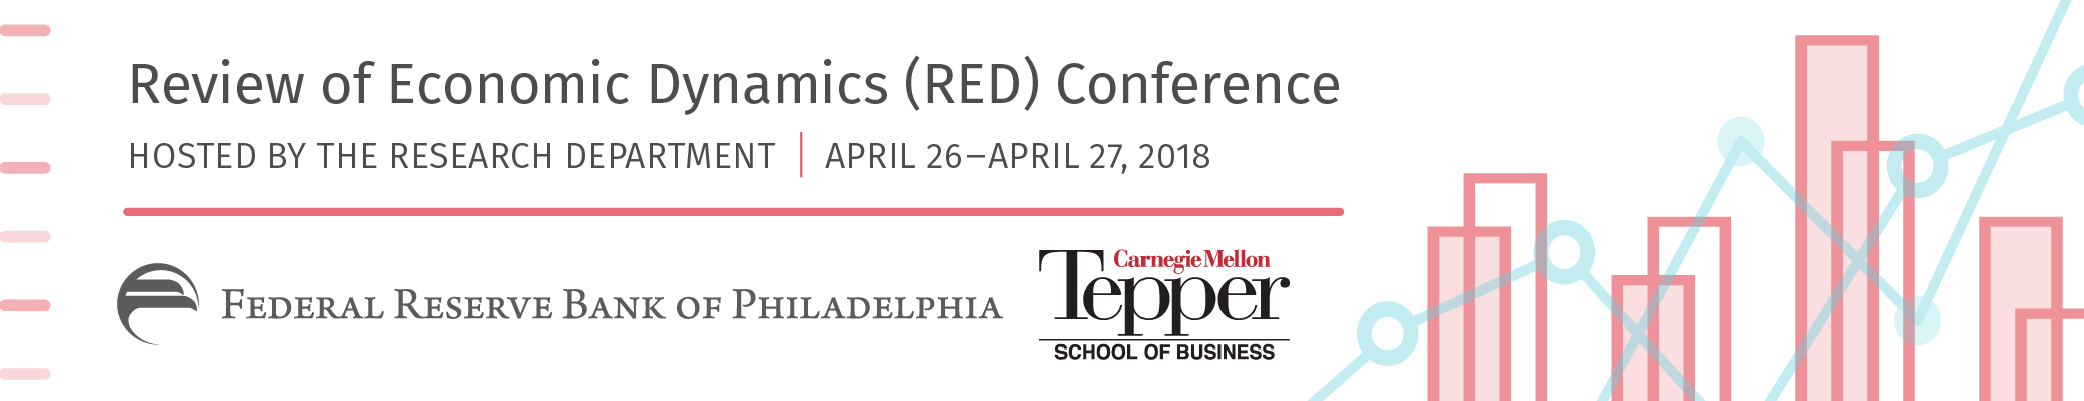 Review of Economic Dynamics (RED) Conference